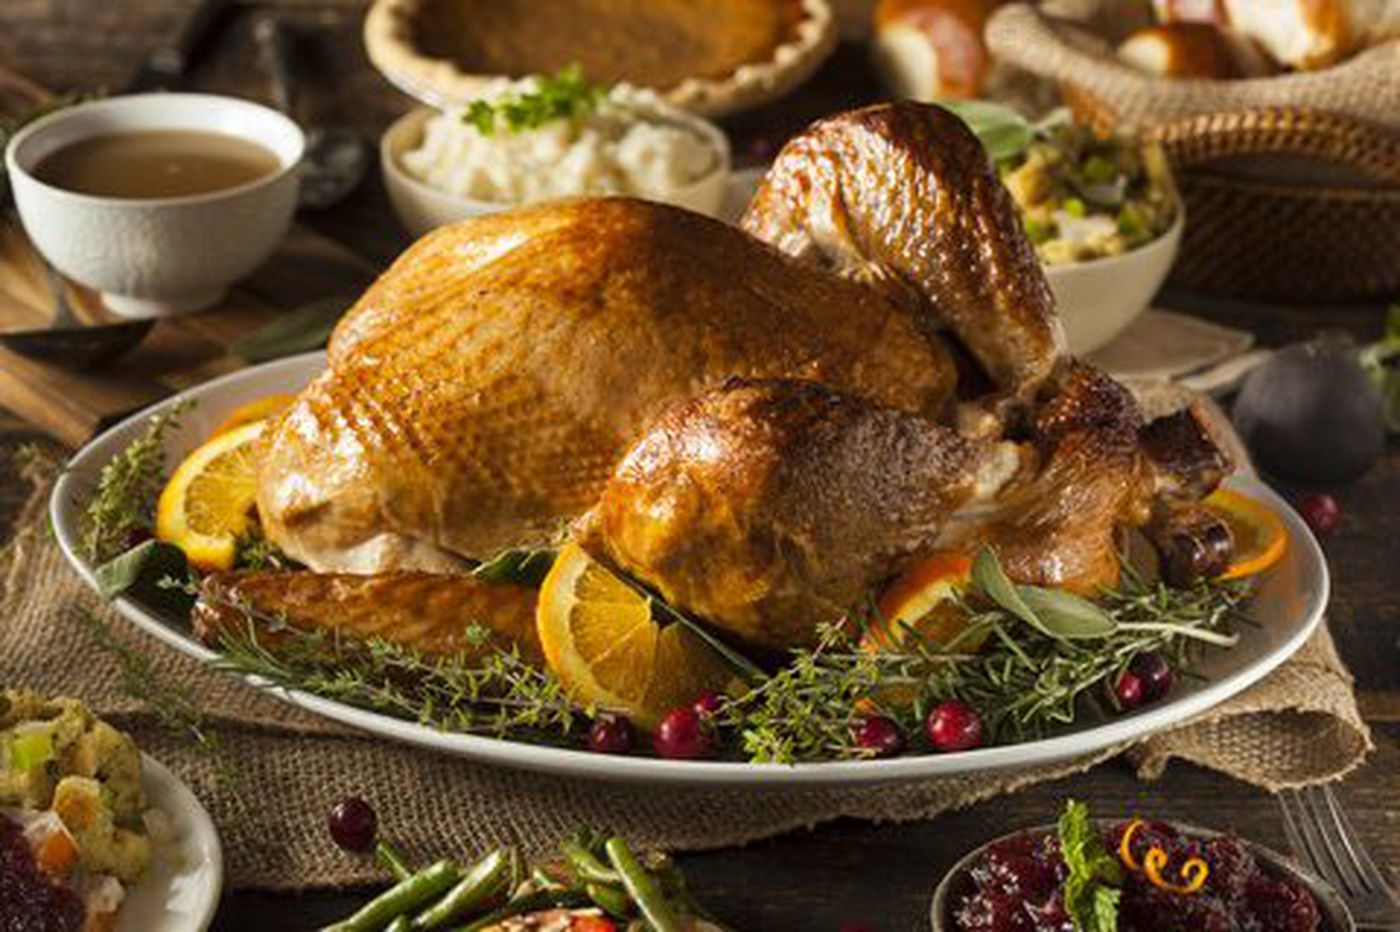 In Philly, a two-bedroom apartment costs 15.7 turkey dinners